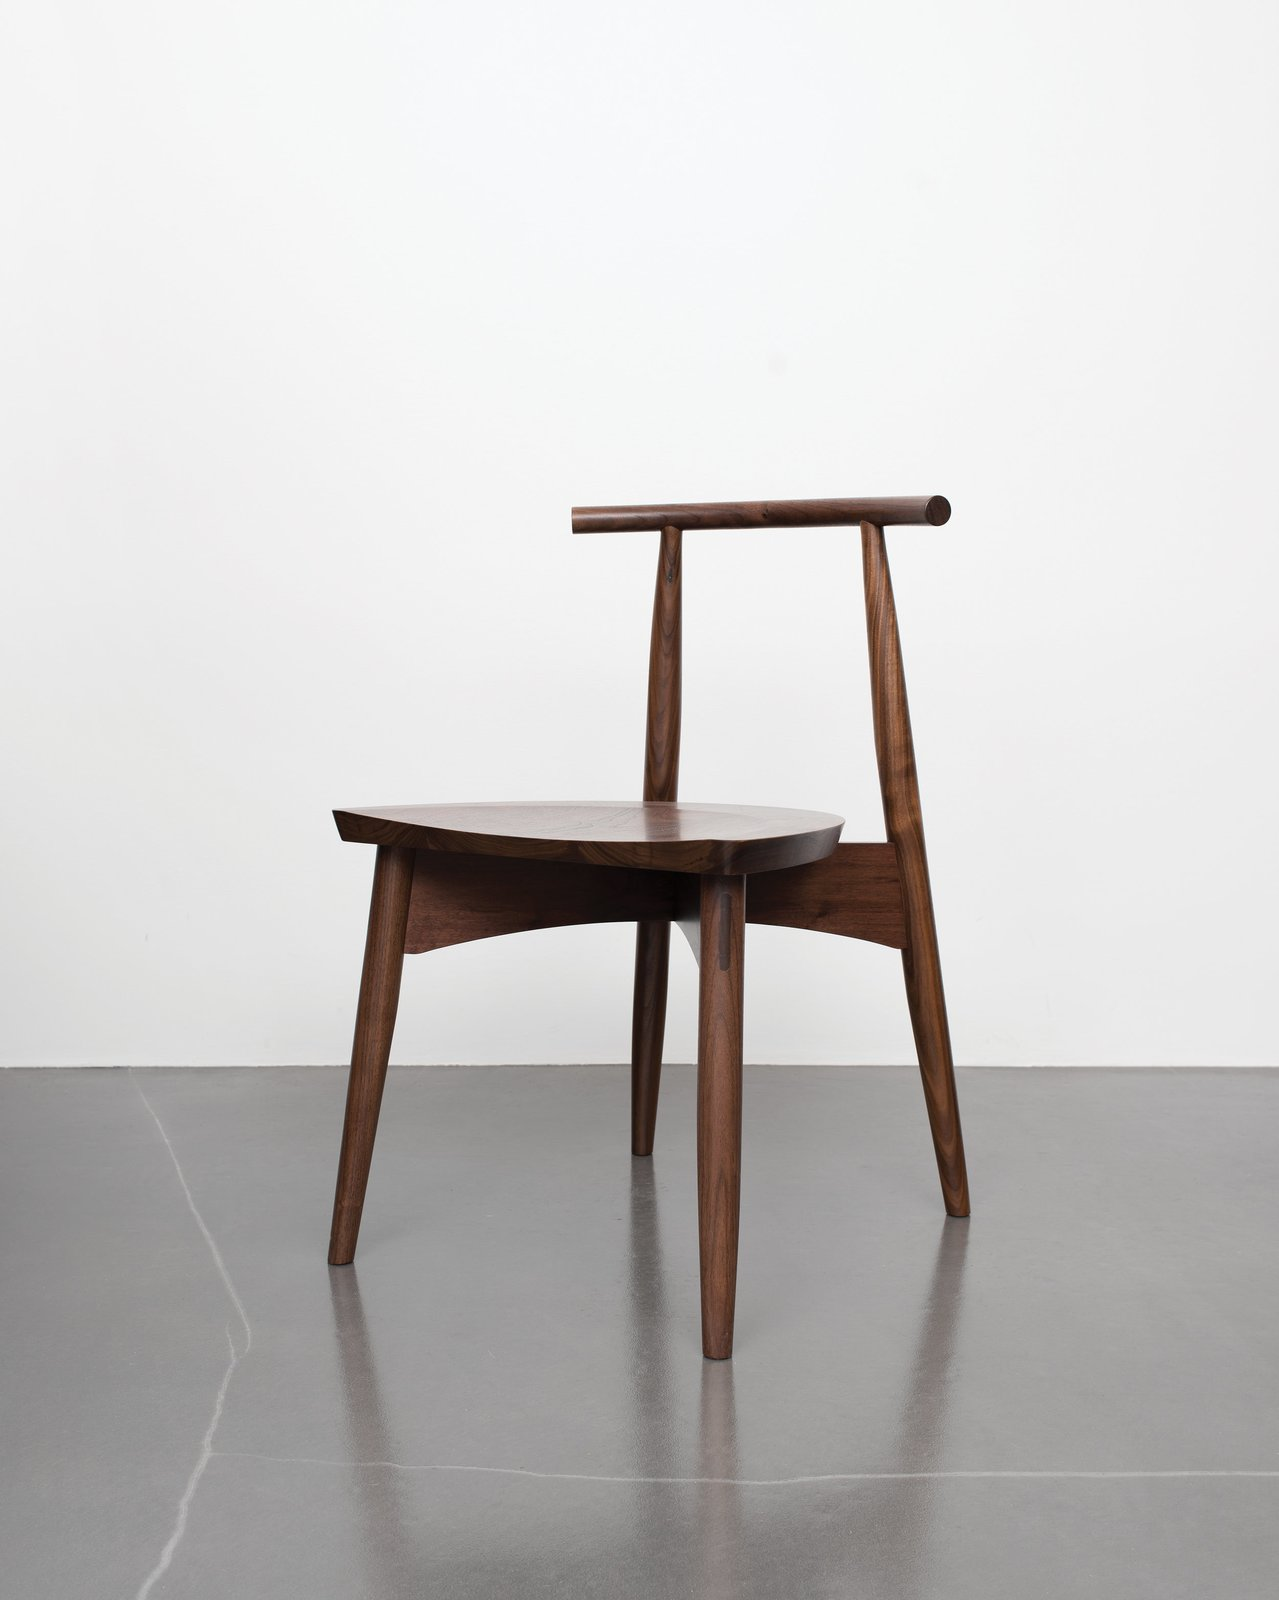 Eight simple components assembled by traditional joinery make up the Portland chair, so-called for the city name shared by Oregon and Maine, where Phloem Studio and Thos. Moser's headquarters are respectively based. A Chair That Shows How Tech and Craft Come Together - Photo 2 of 5